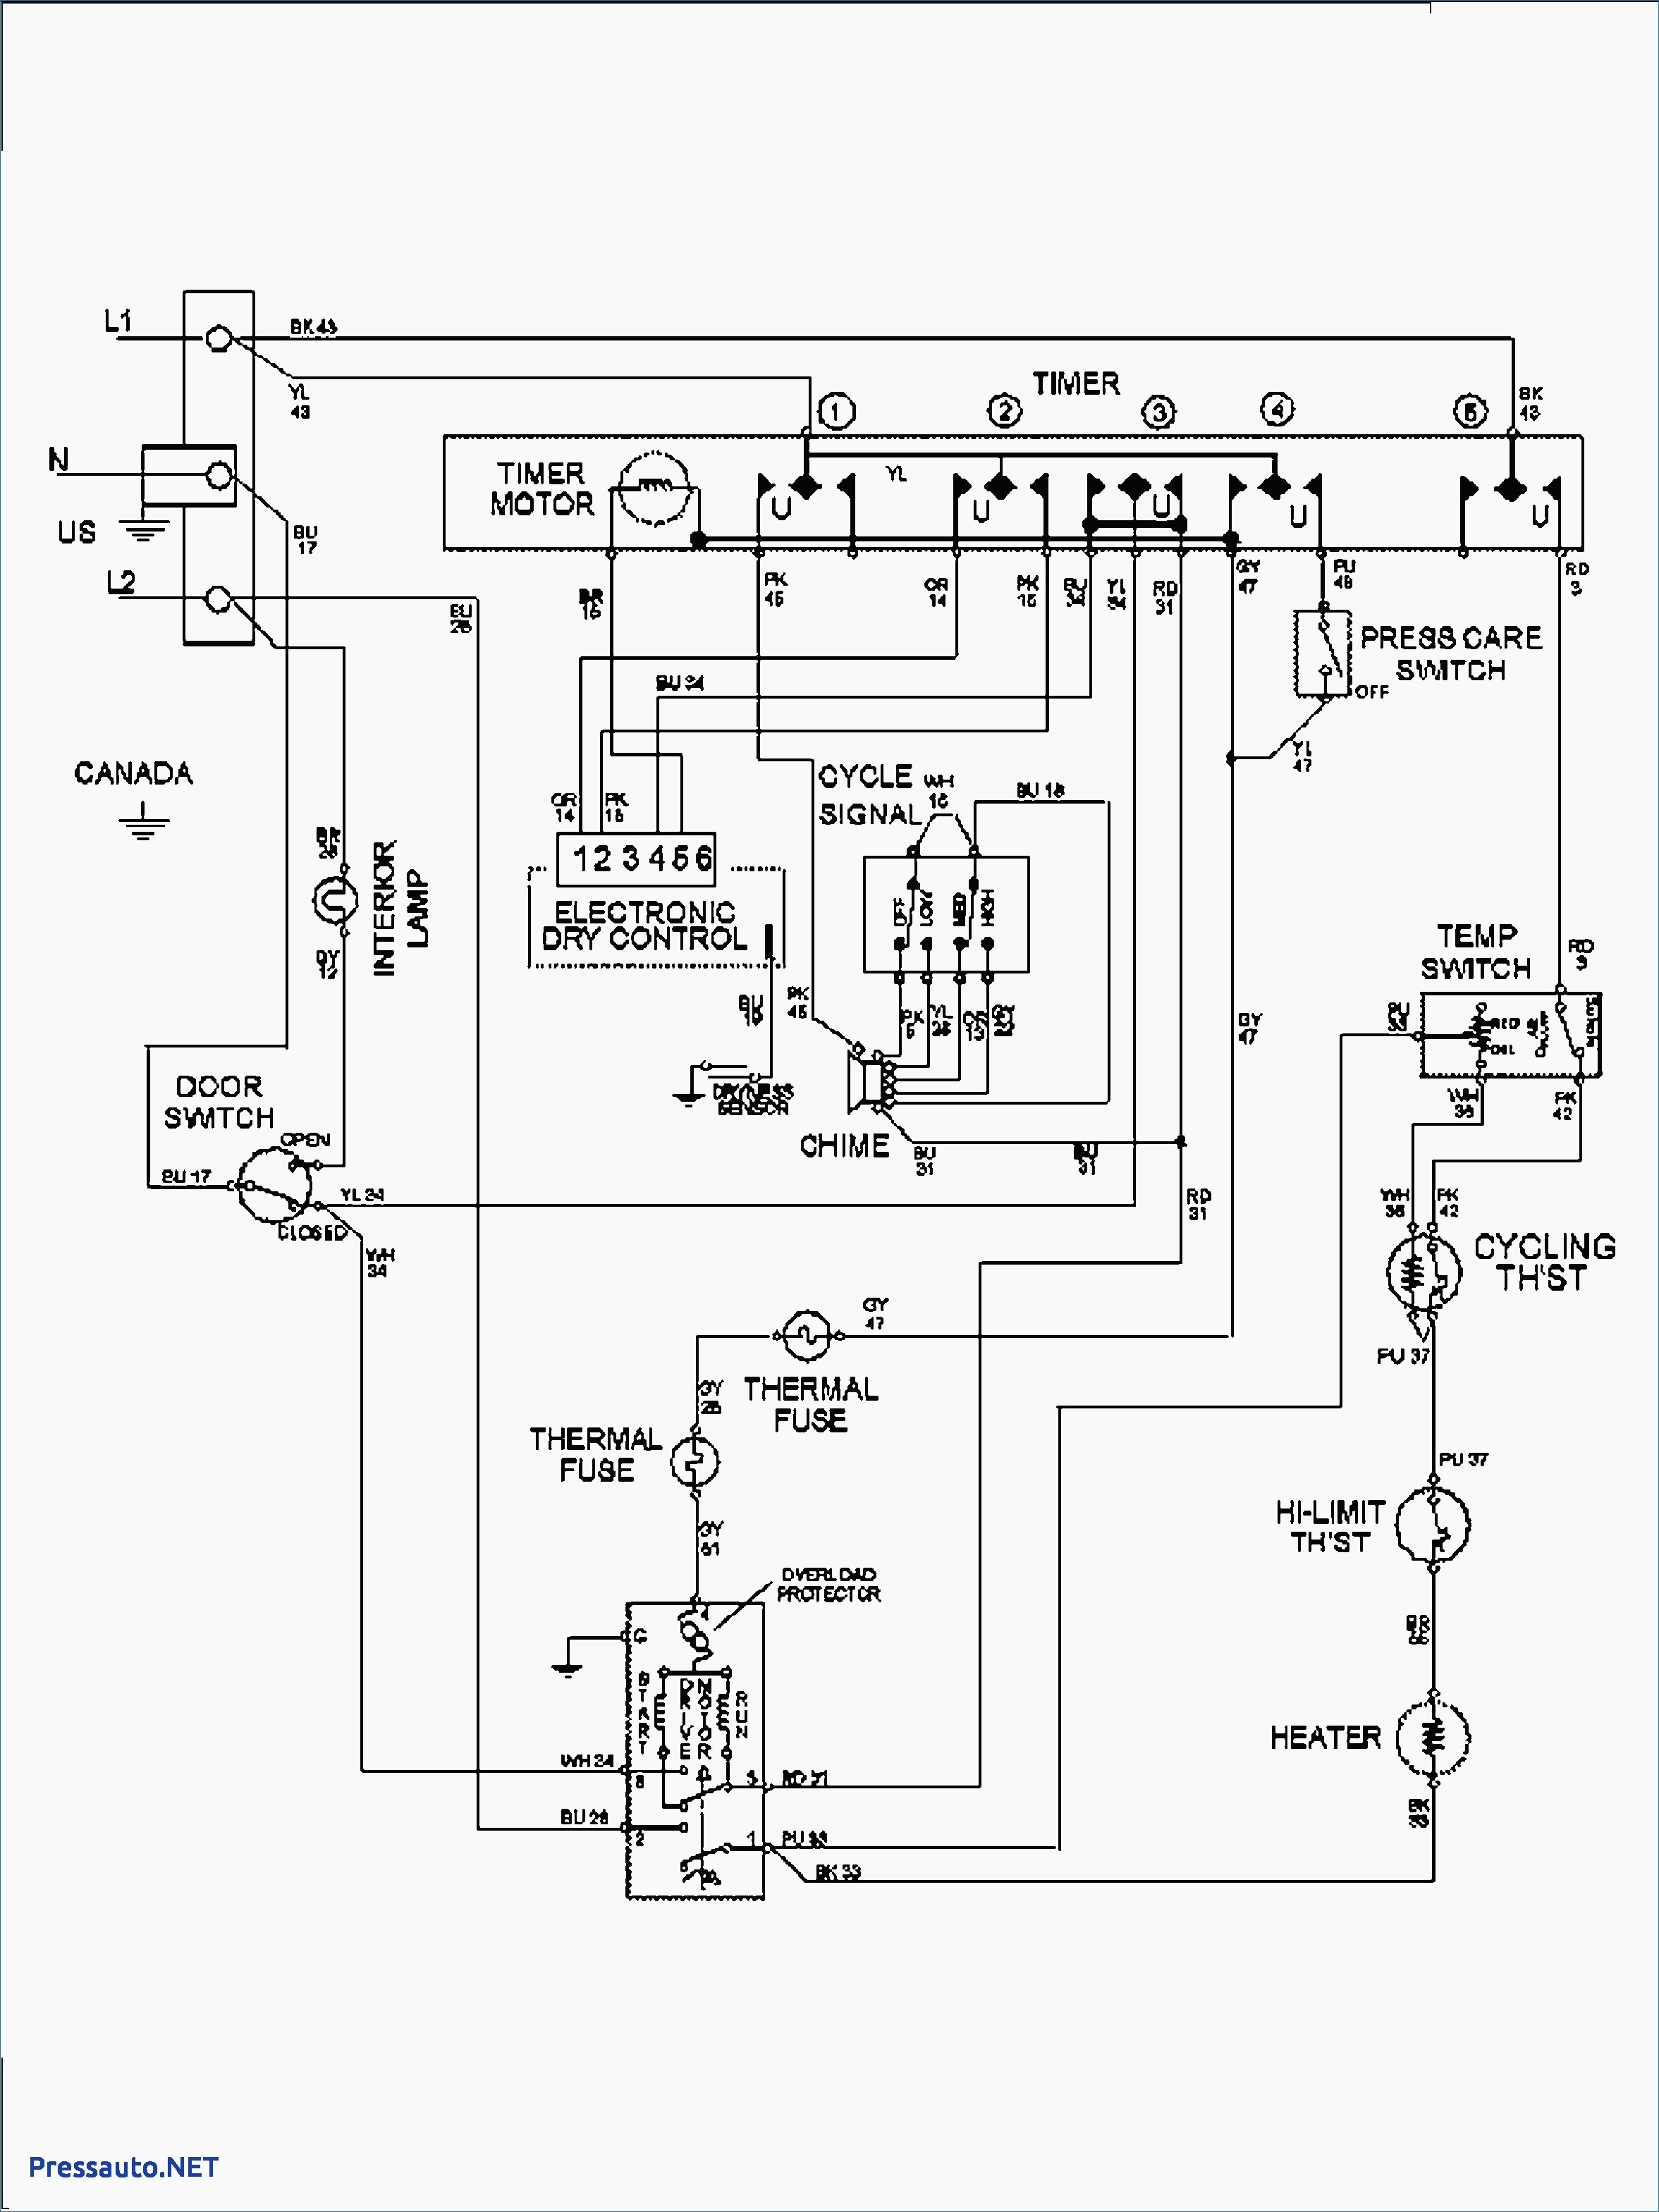 Get Whirlpool Electric Dryer Wiring Diagram Sample